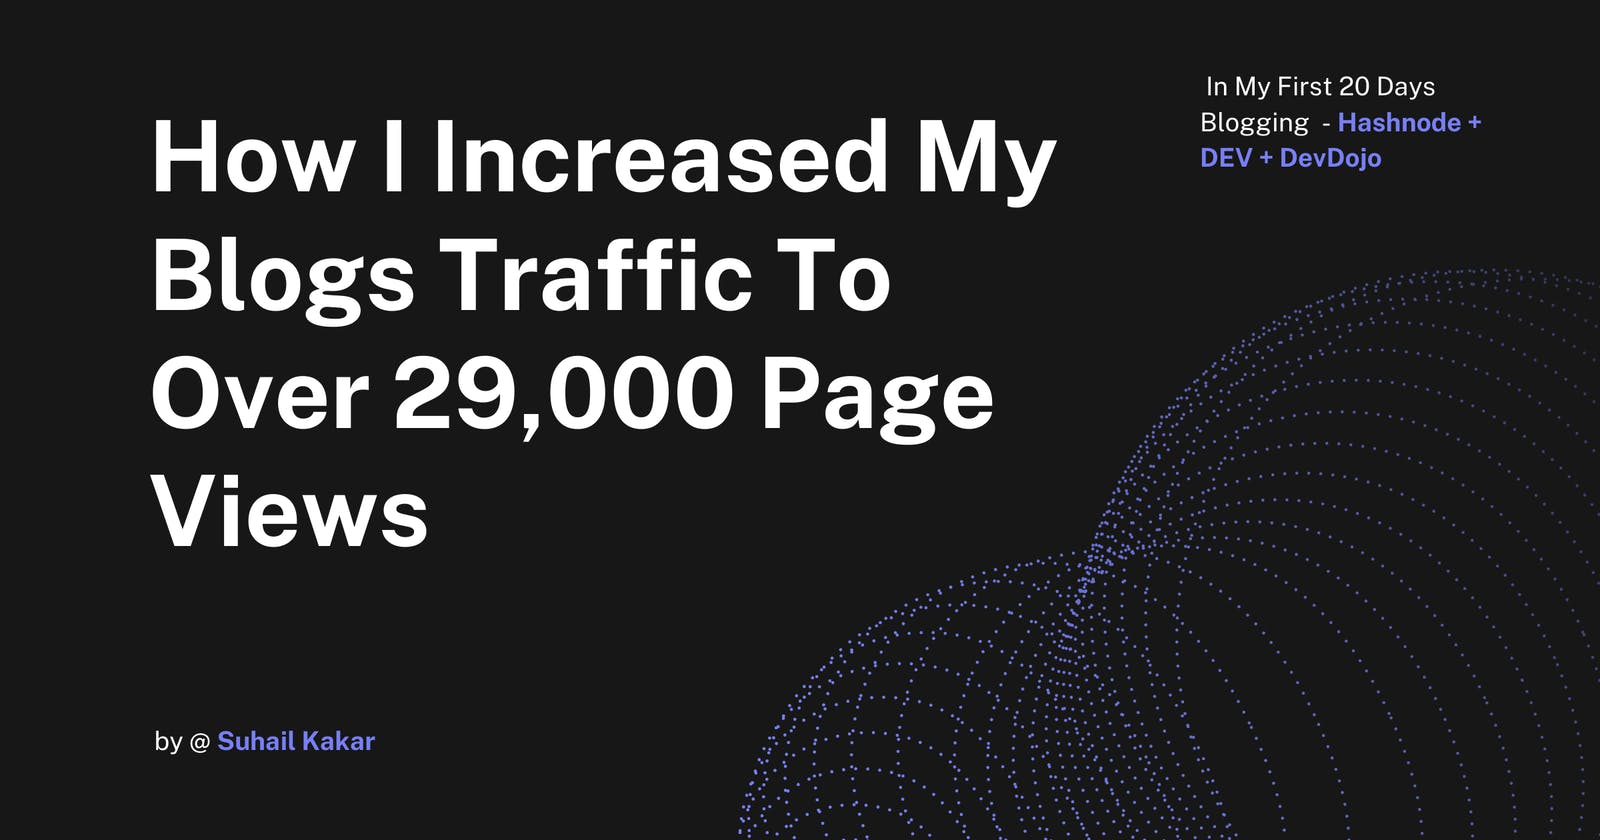 How I Increased My Blogs Traffic To Over 29,000 Page Views In My First 20 Days Blogging | Hashnode + Dev + Devdojo